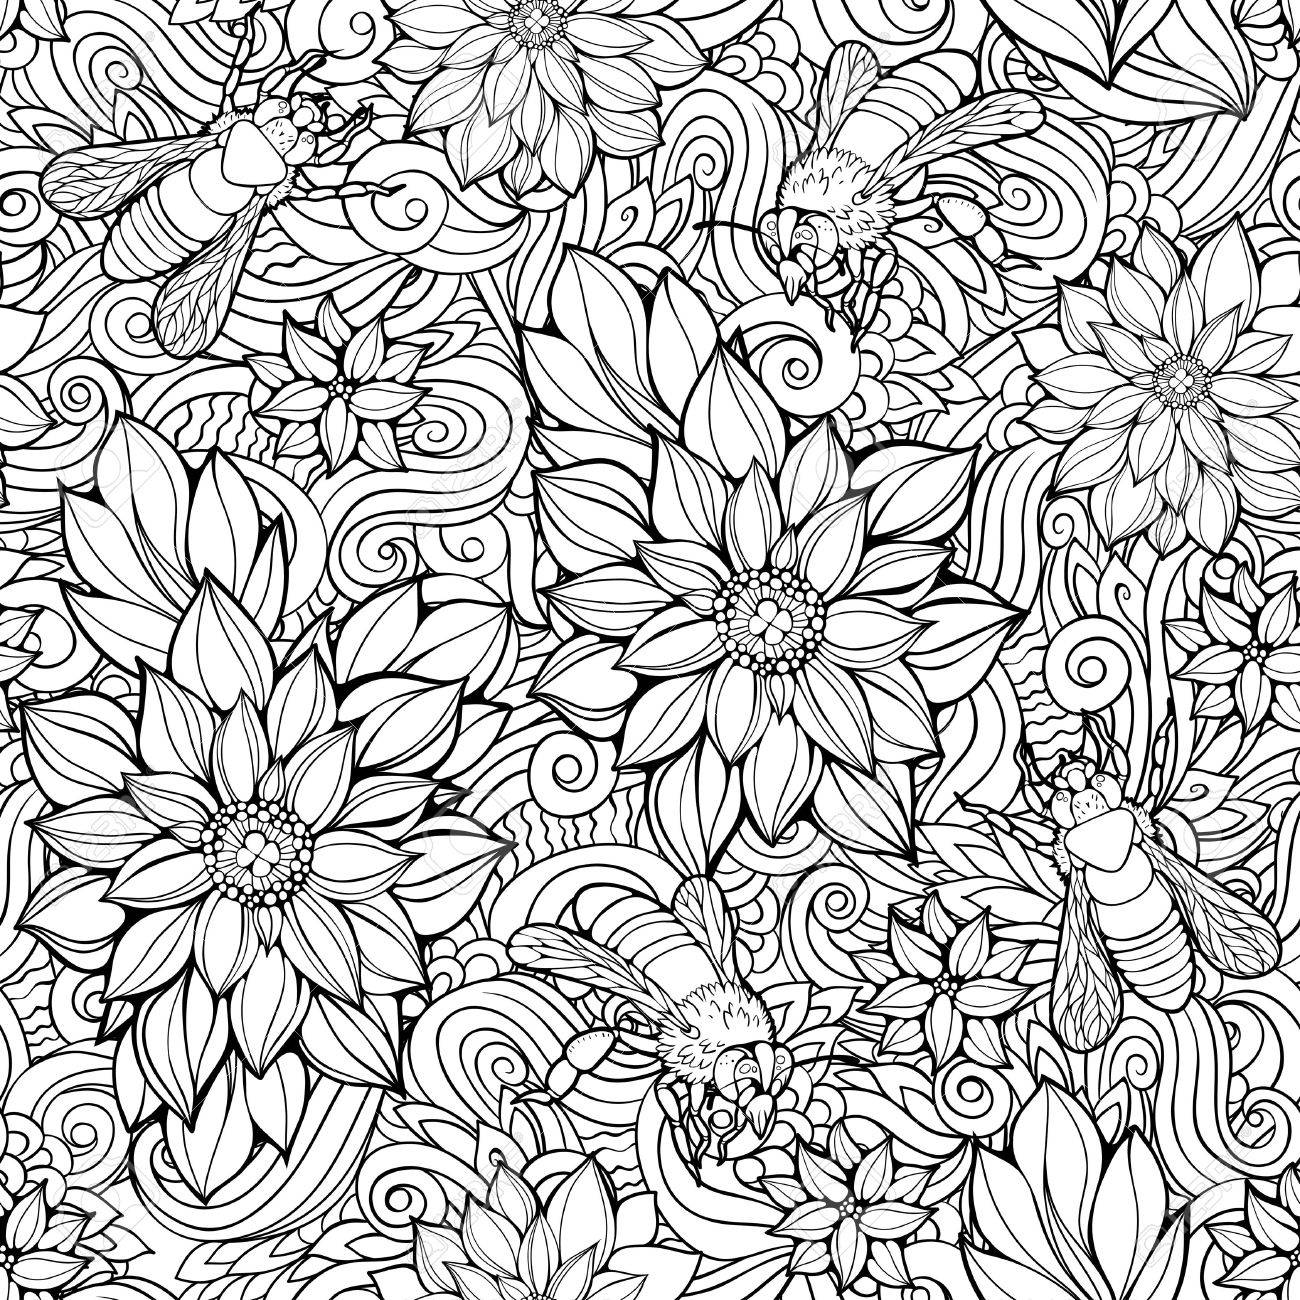 Coloring Page With Seamless Pattern Of Flowers And Bees Stock Vector